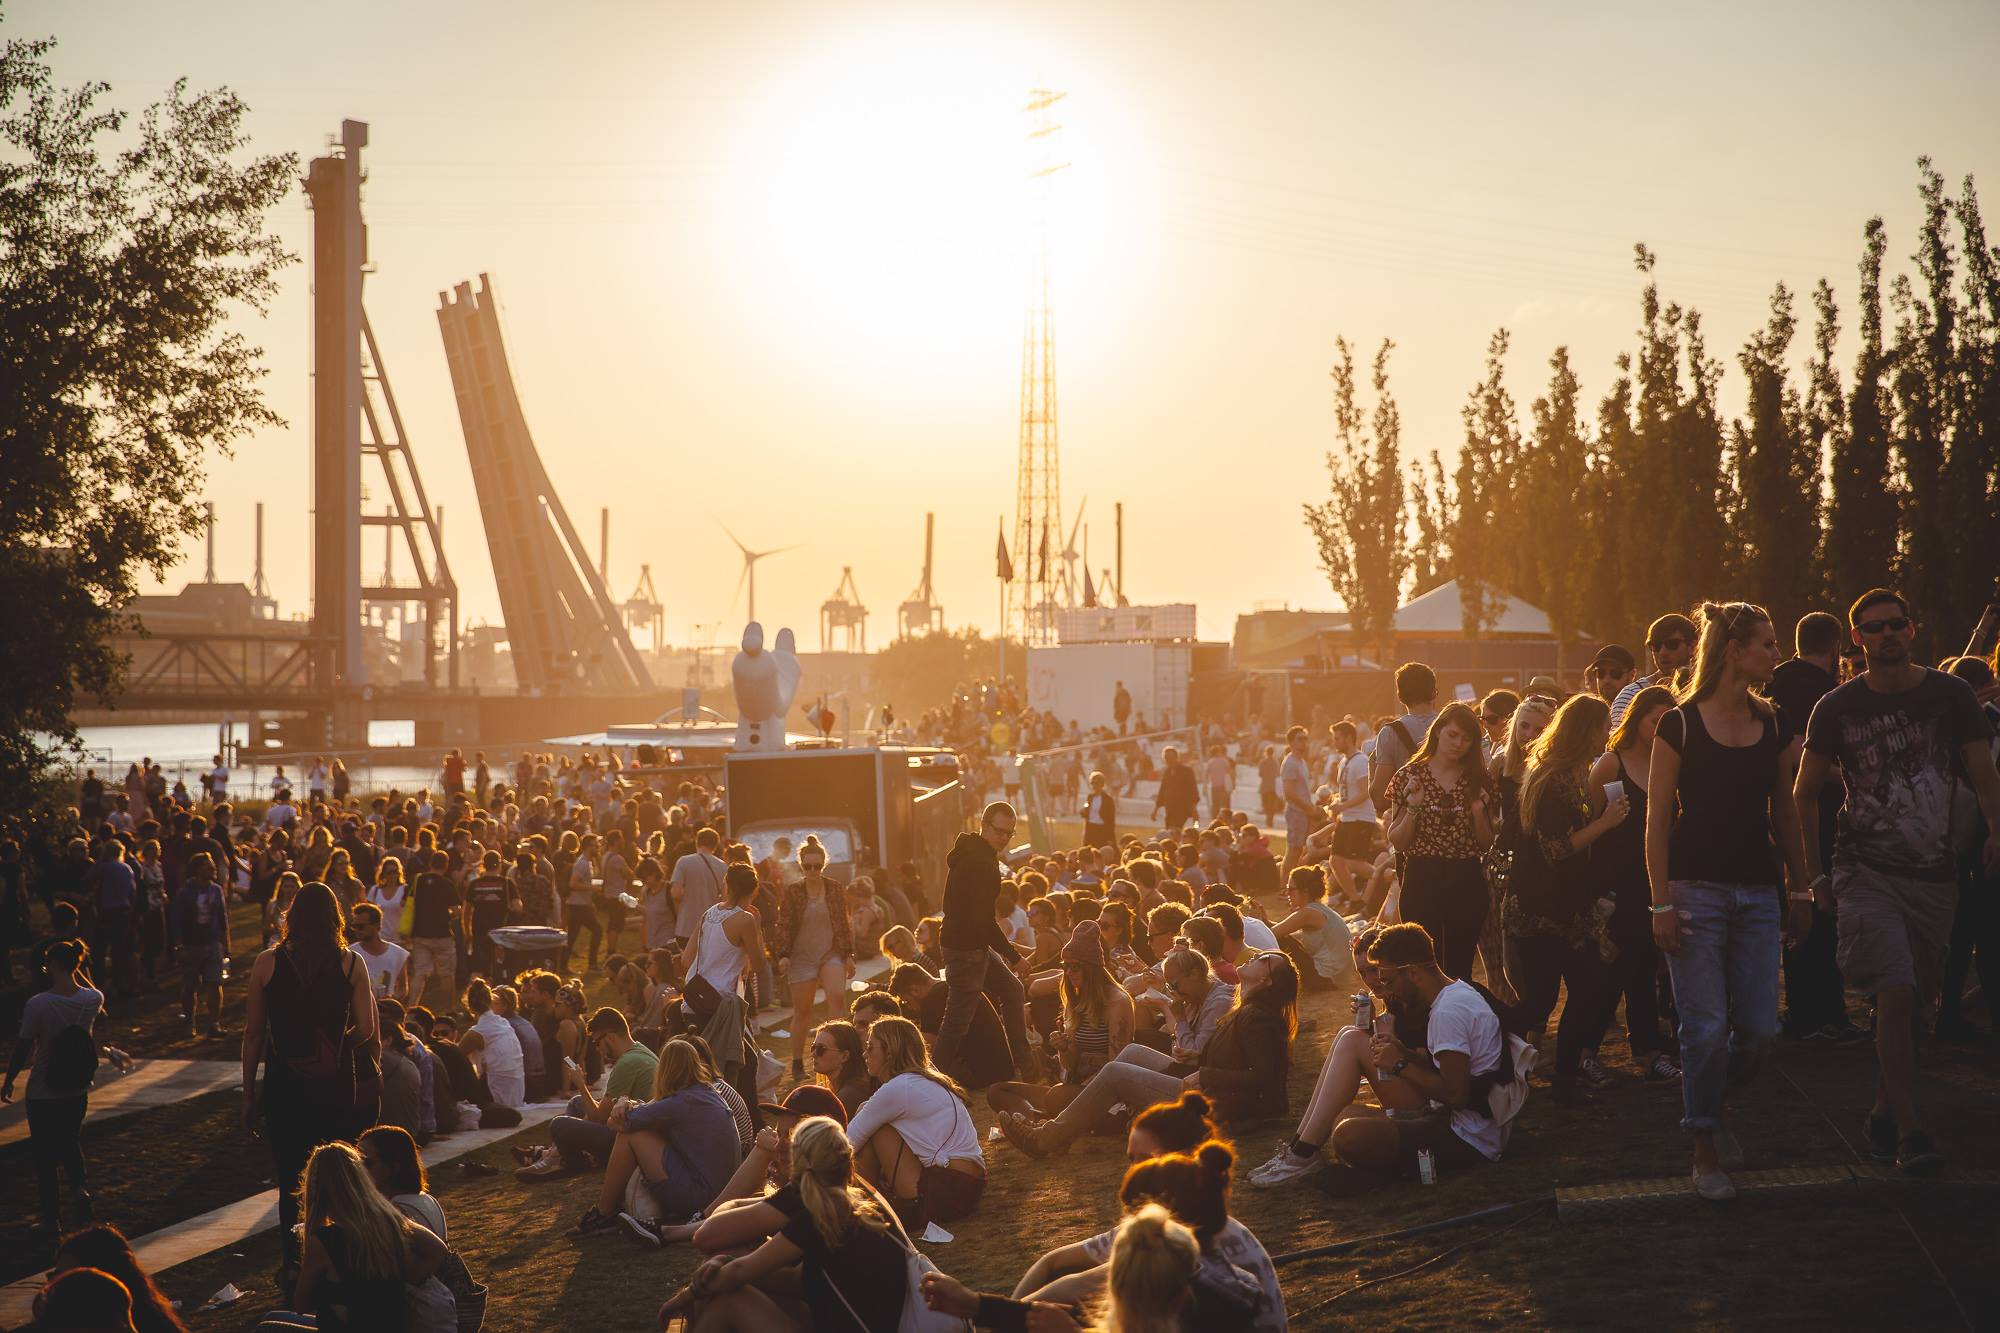 donnerstag dockville festival ms dockville mit vergn gen hamburg. Black Bedroom Furniture Sets. Home Design Ideas